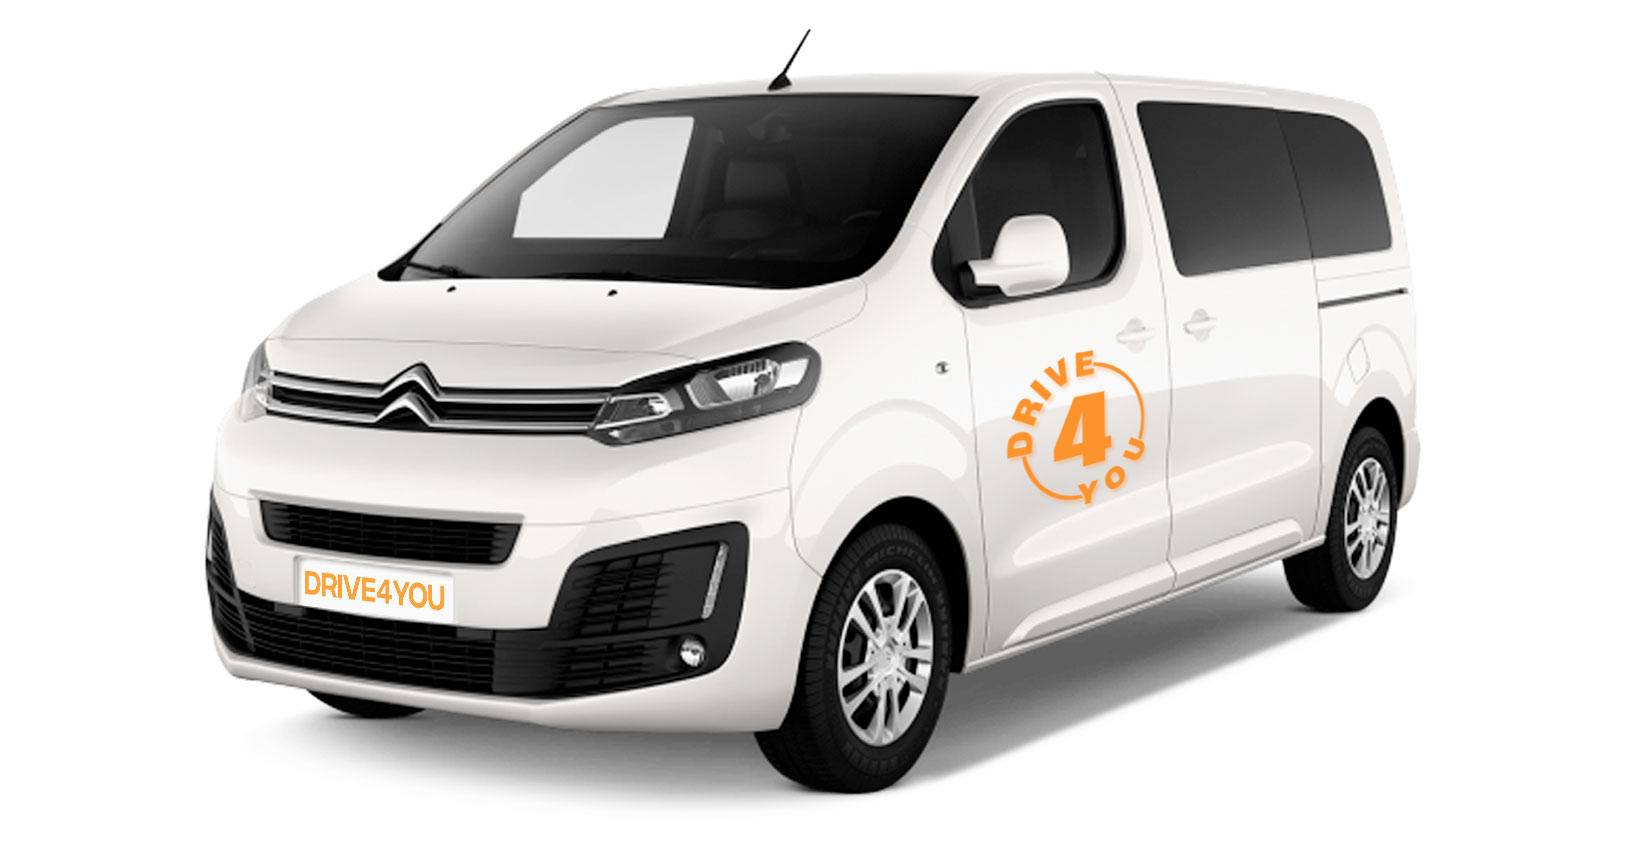 citroen-jumpy-drive4you-7-places